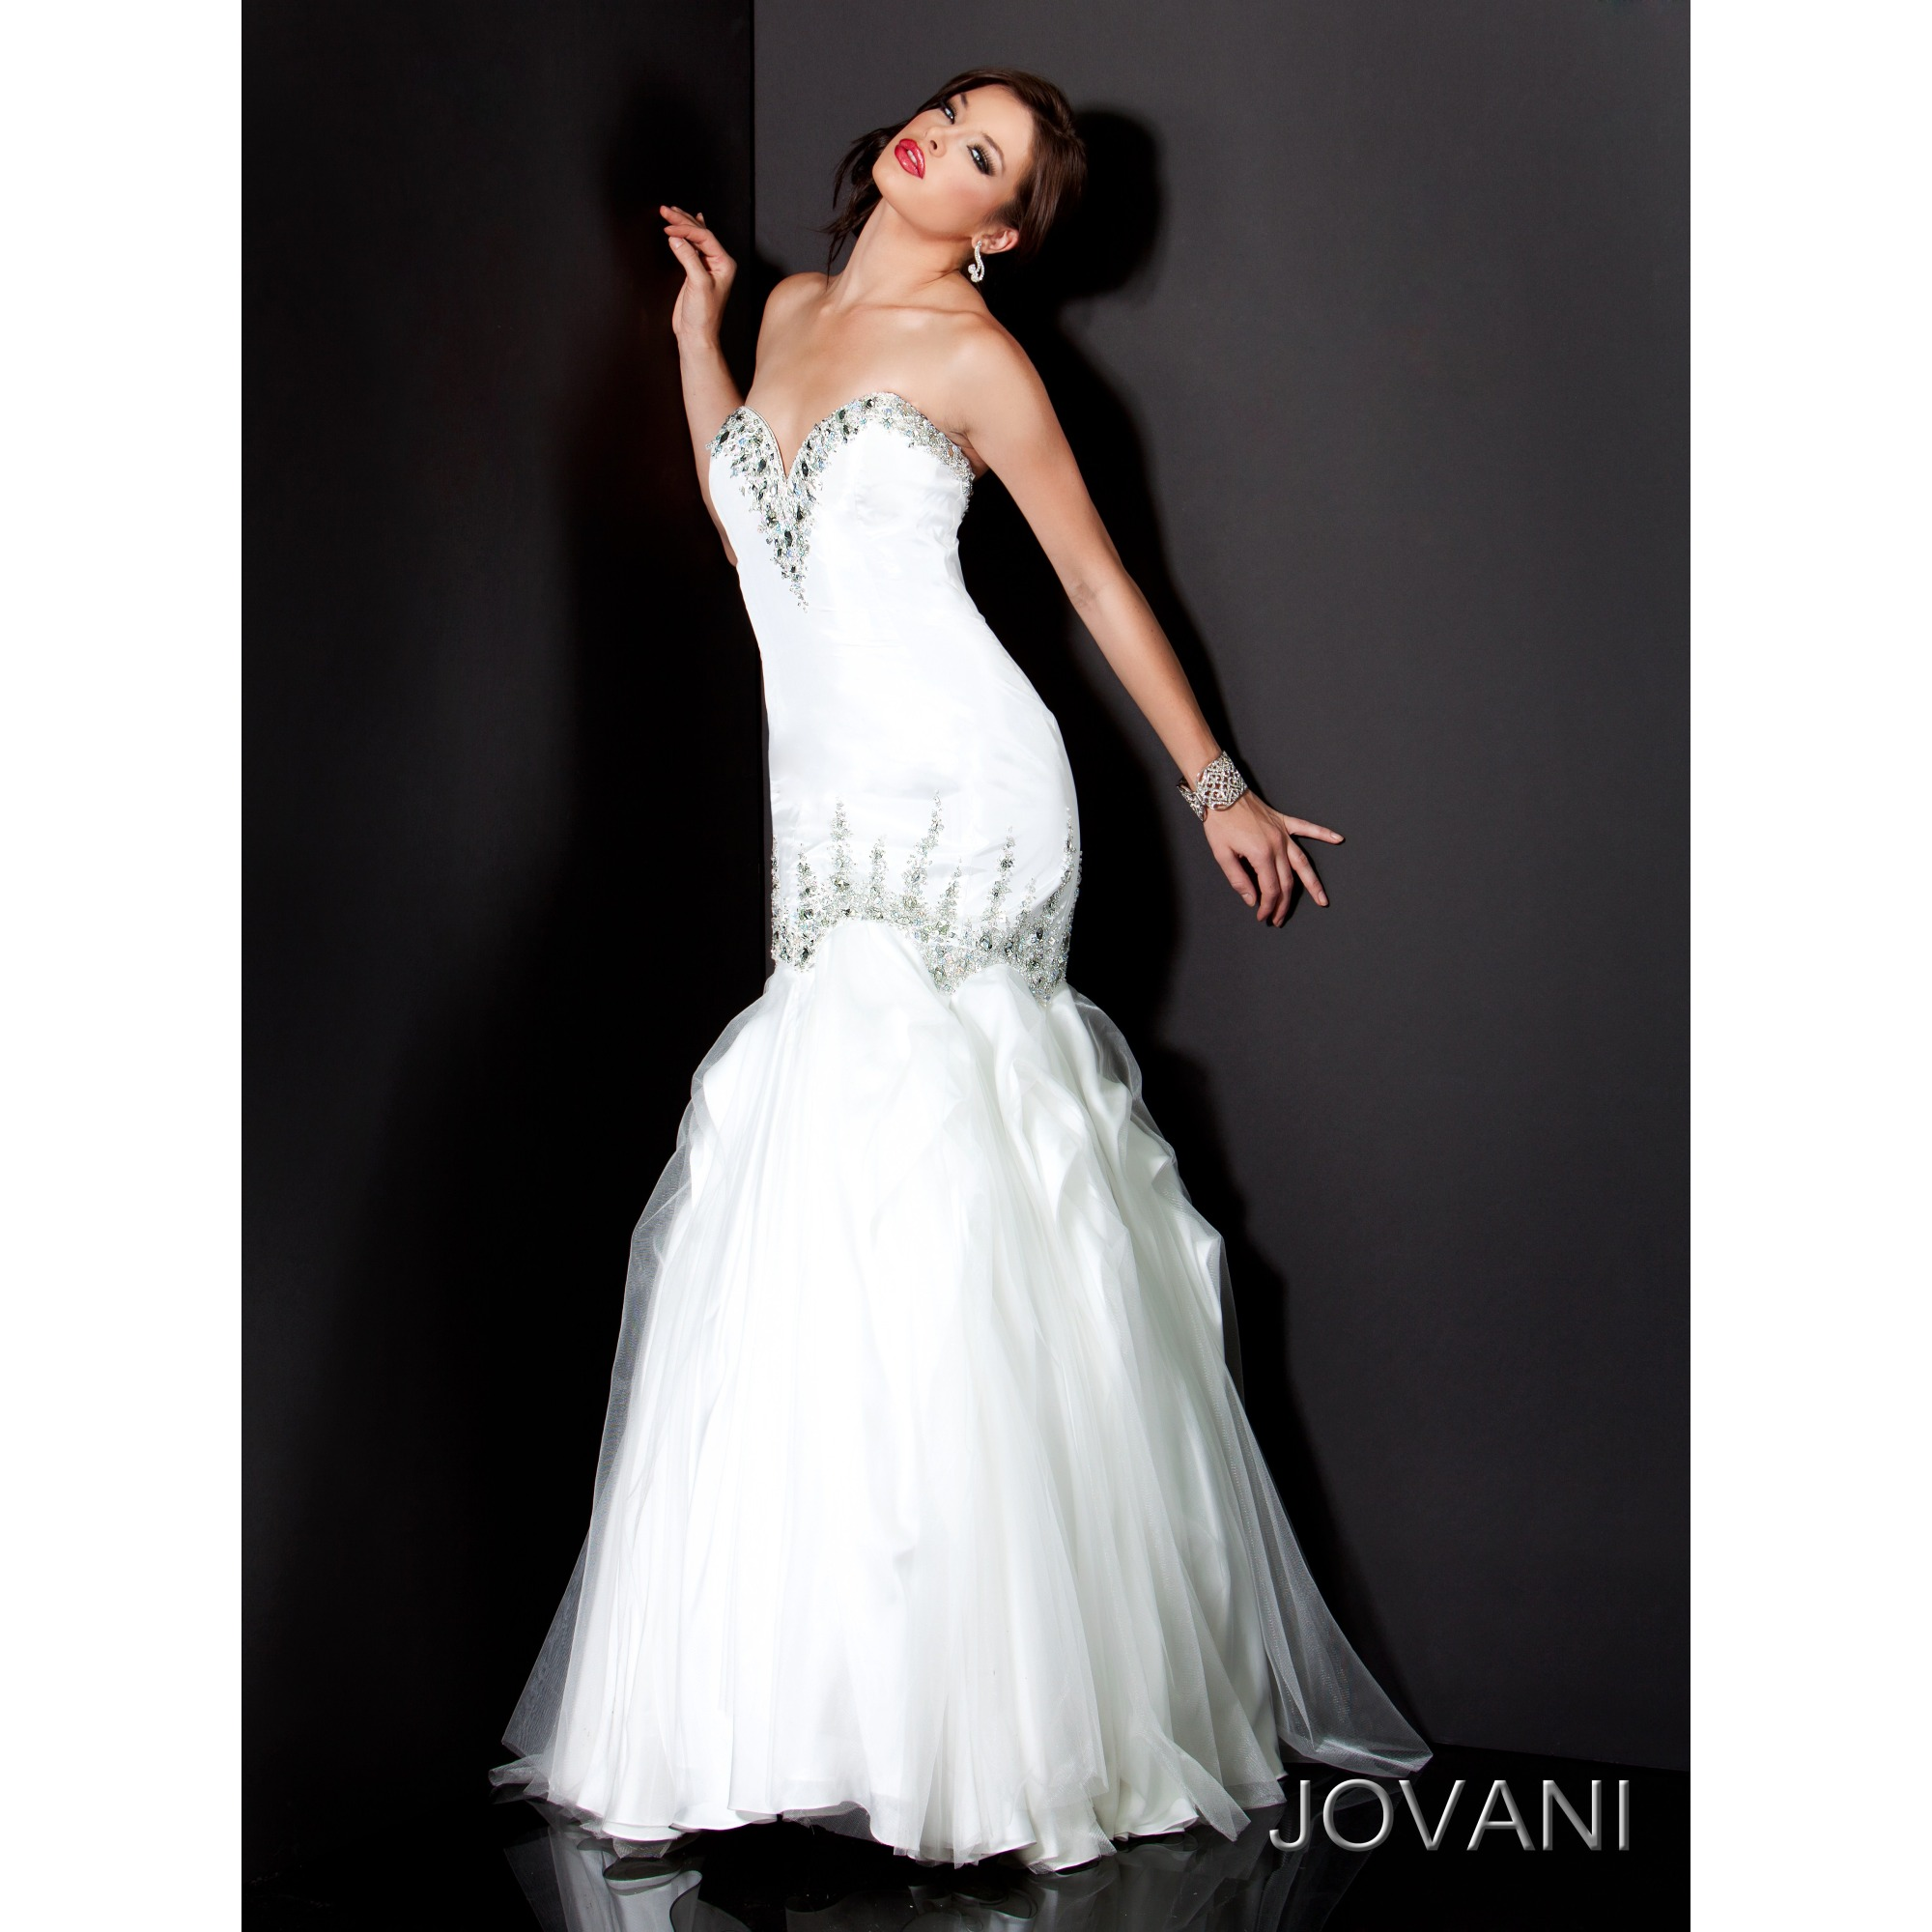 White Mermaid Strapless Sweetheart Zipper Full Length Evening Dresses With Beading And Ruffles